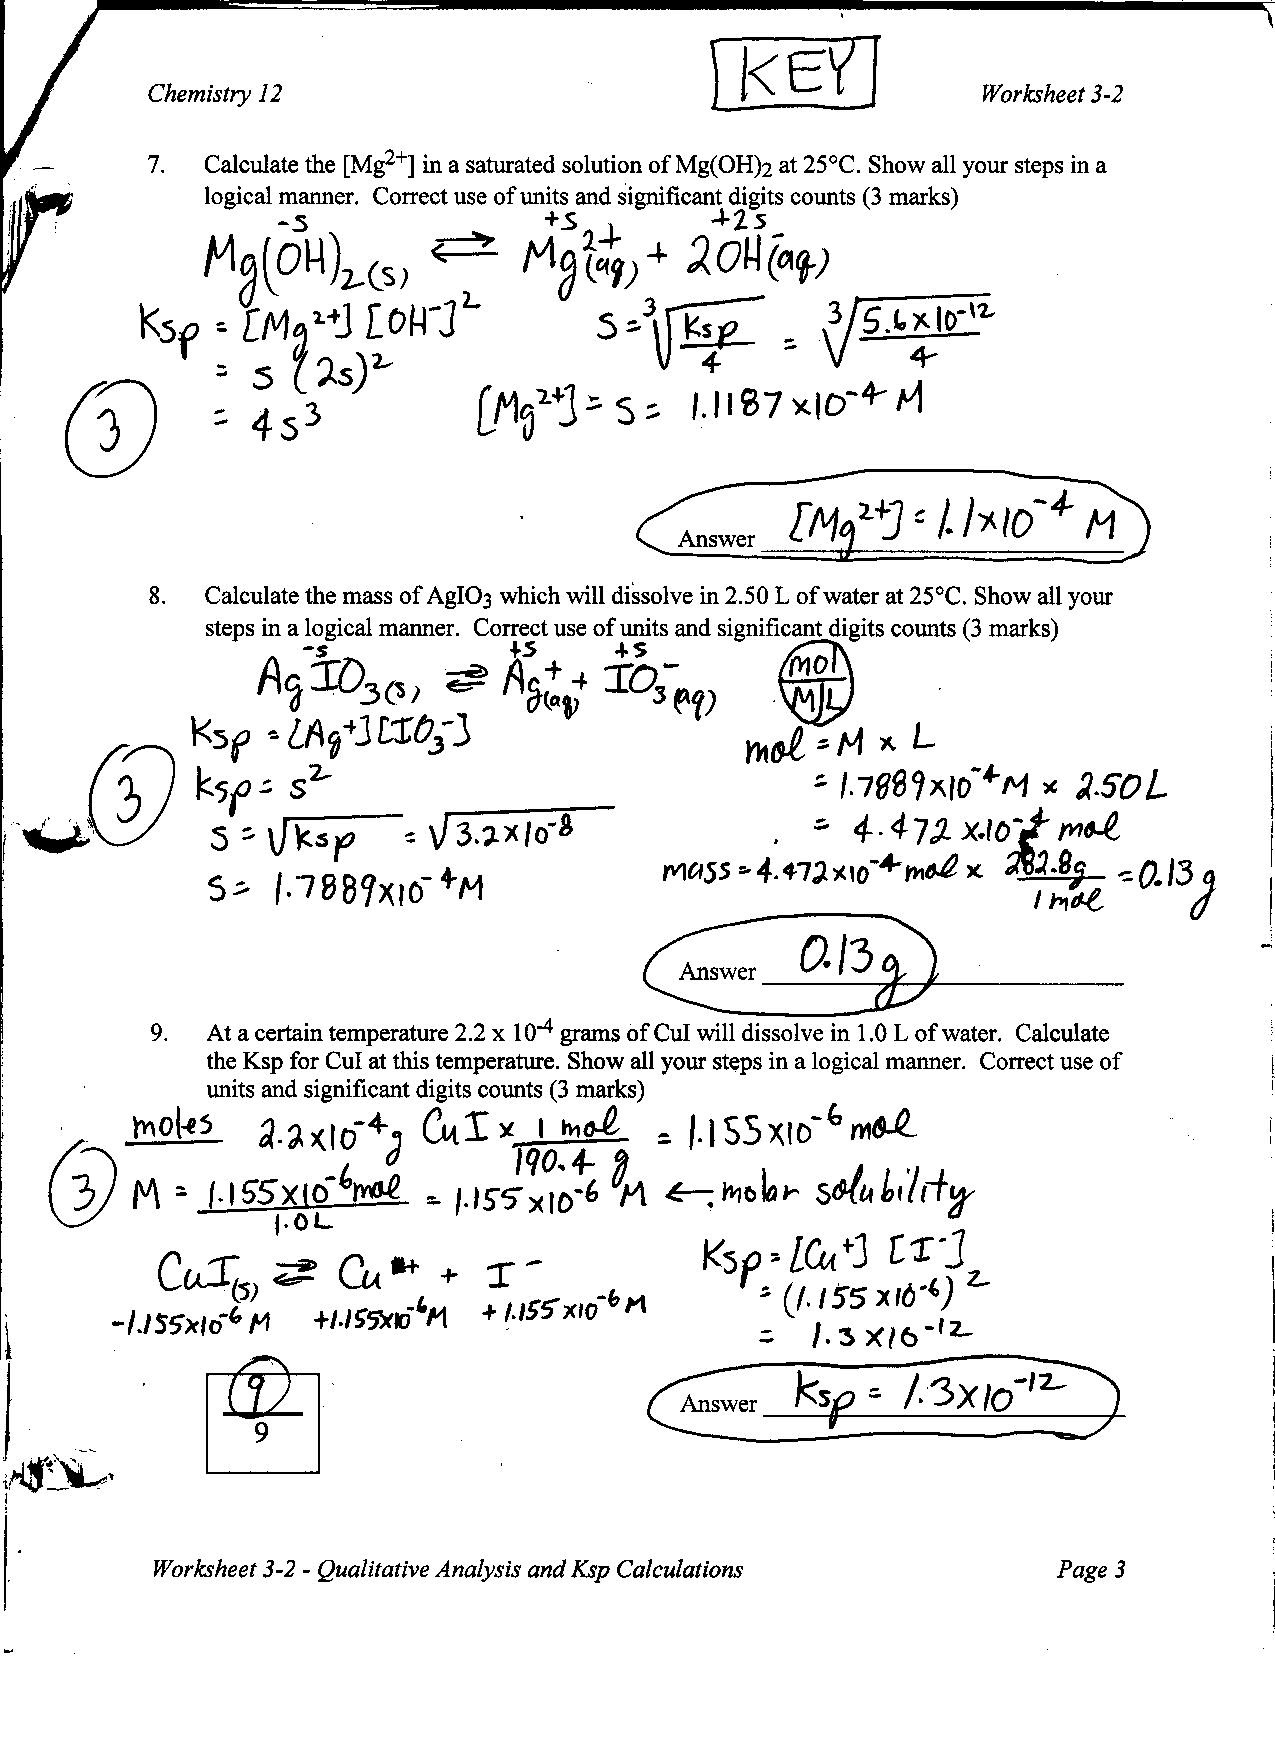 29 Stoichiometry Problems Chem Worksheet 12 2 Answer Key Free Worksheet Spreadsheet